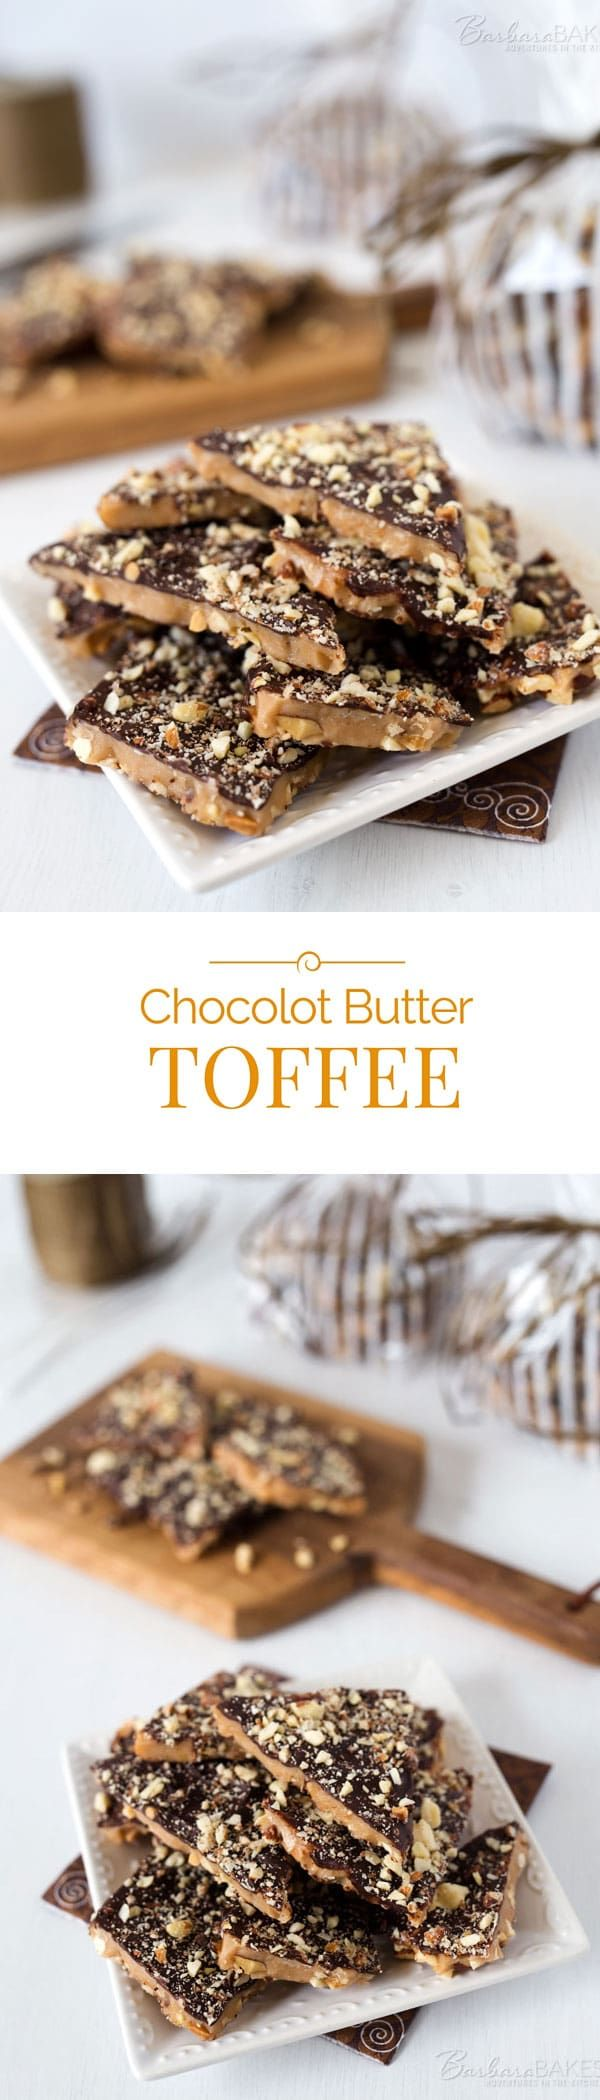 Chocolate Butter Toffee: Crisp, rich butter toffee loaded with crunchy almonds, topped with creamy milk chocolate and more chopped almonds. Butter toffee recipe from Chocolot. | Barbara Bakes